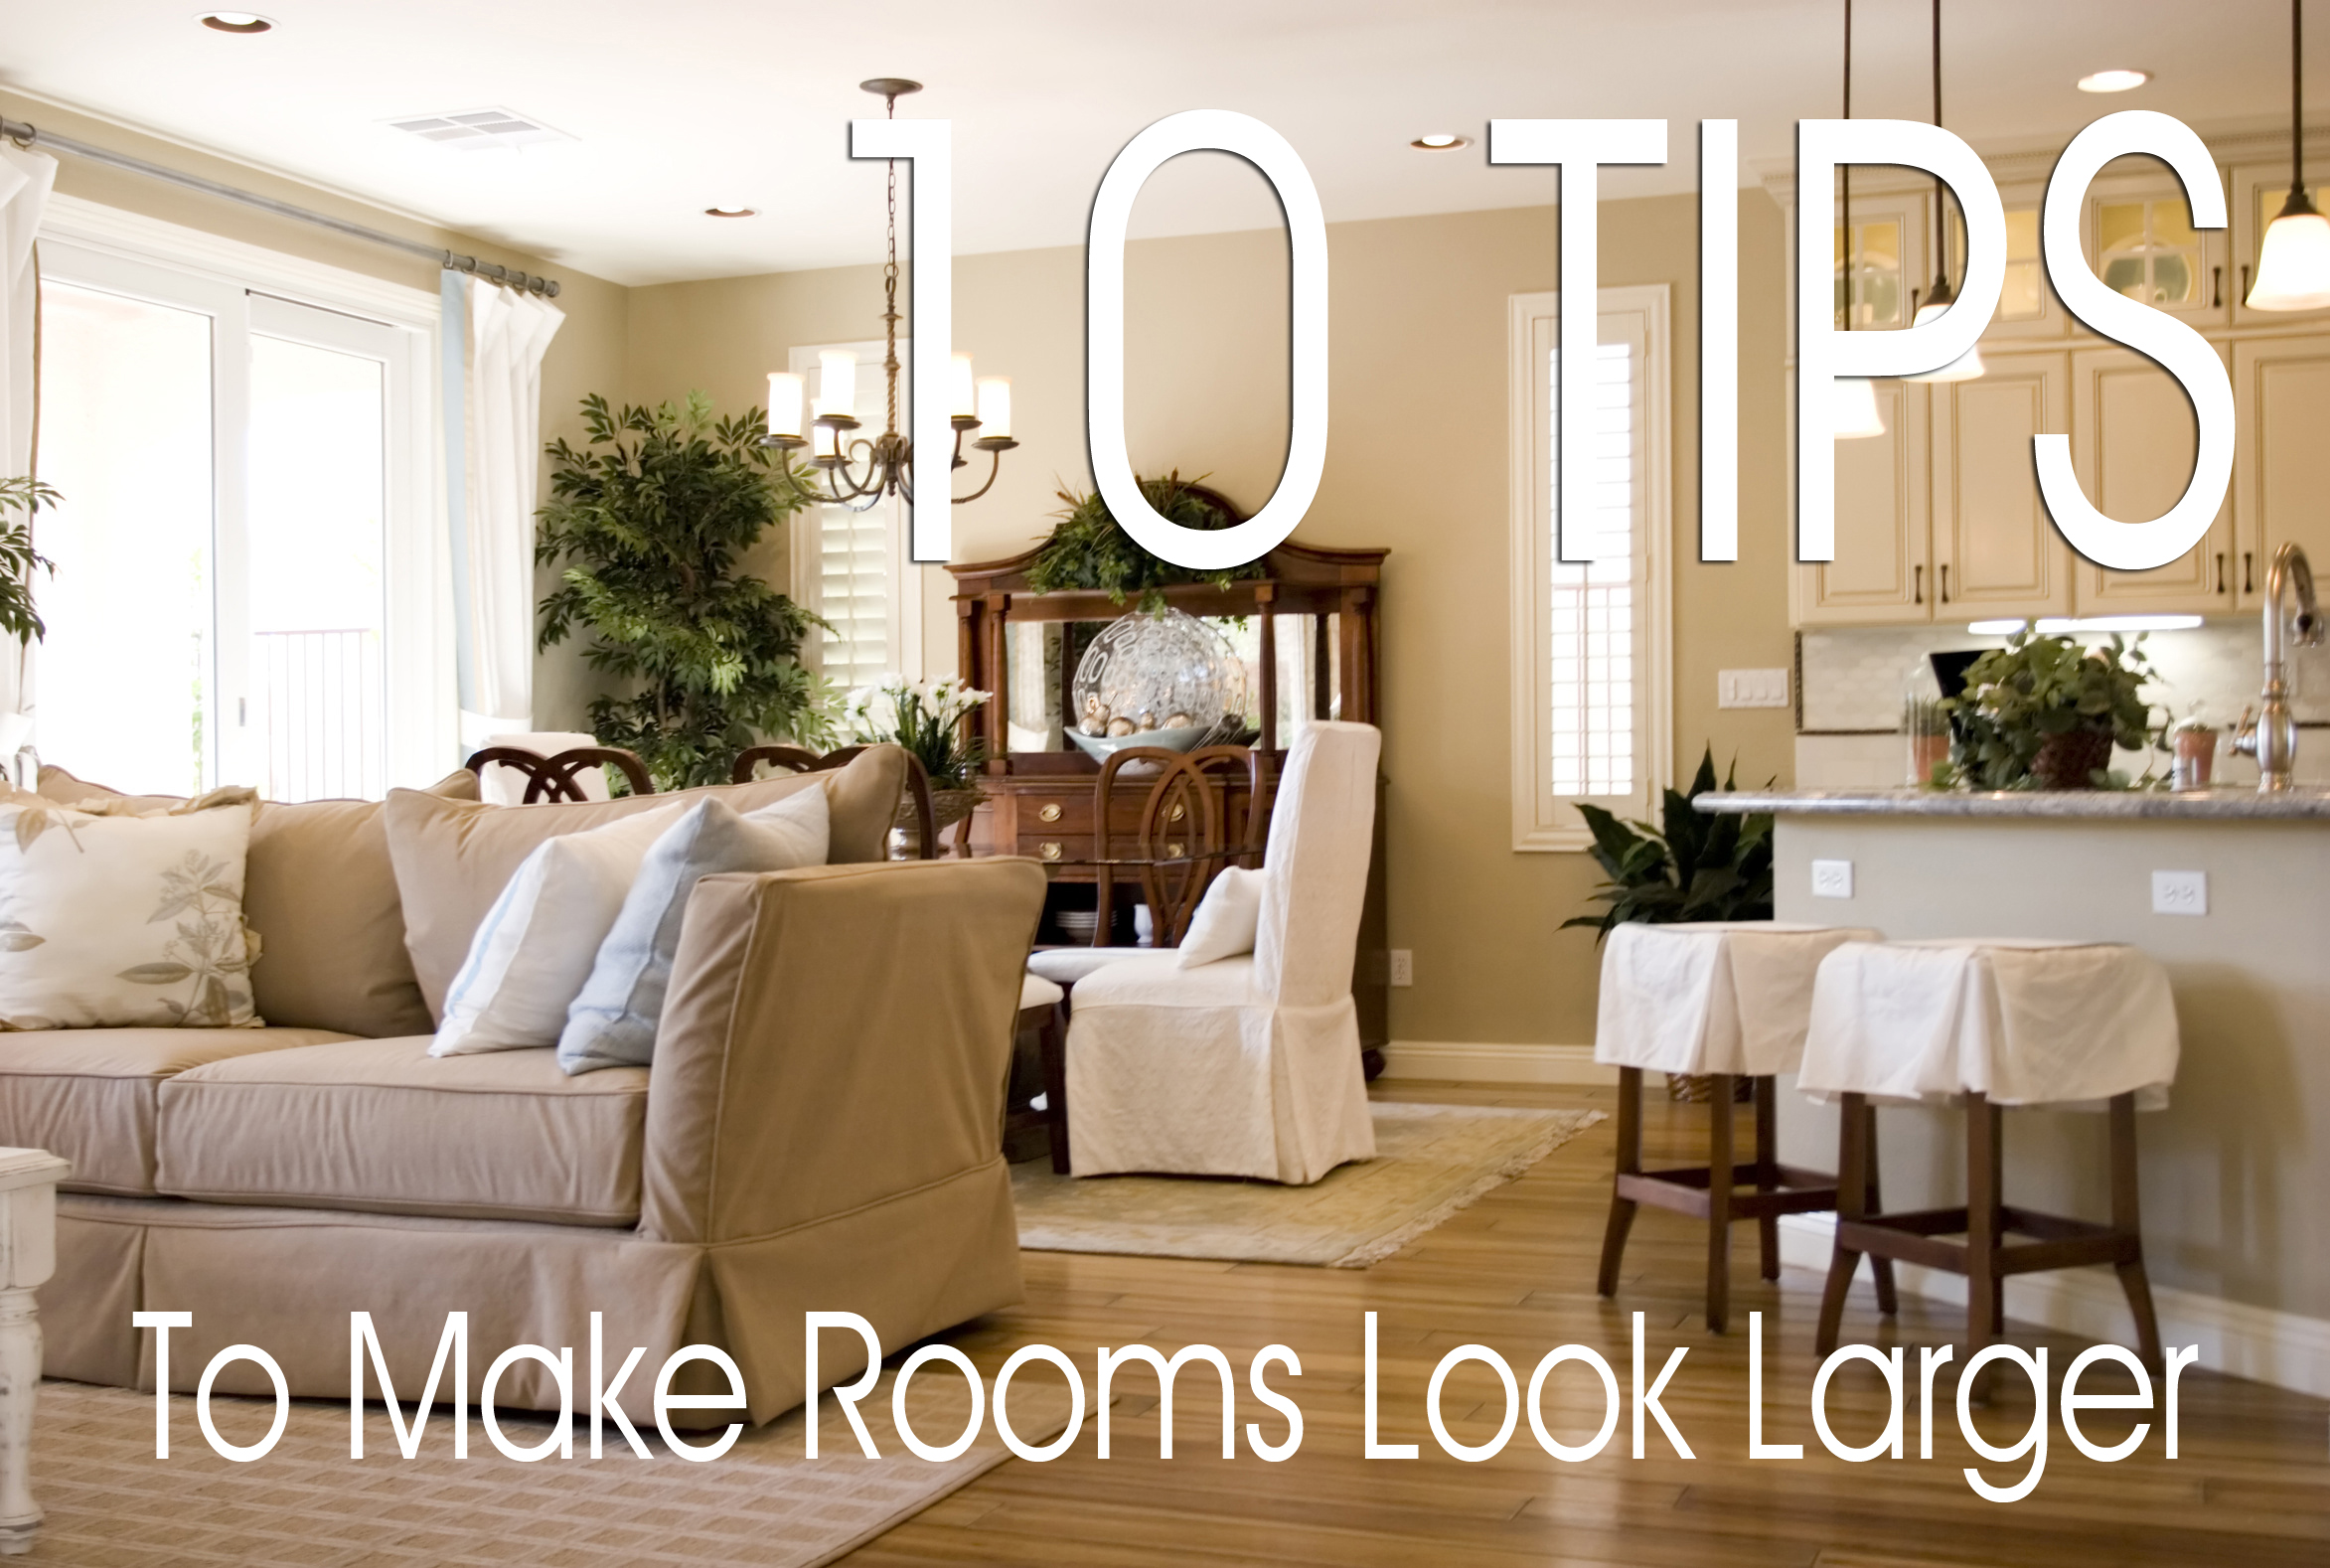 How to make small rooms look larger sibcy cline blog - How to make a small space look bigger ...